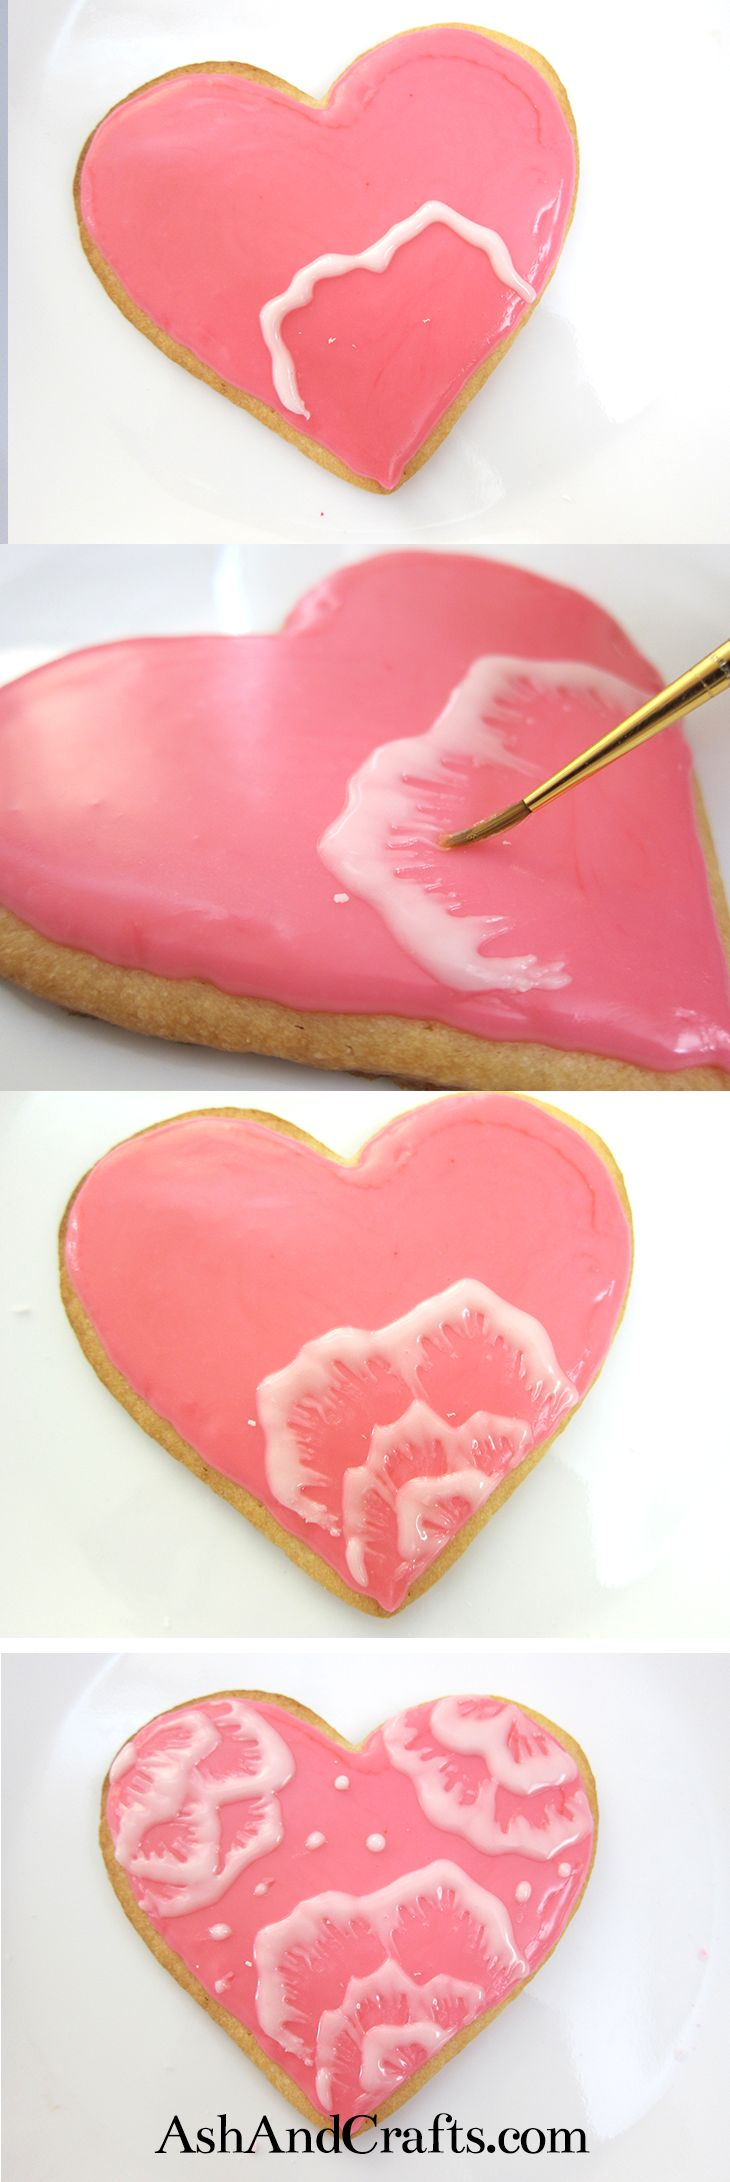 Learn how to decorate cookies with pretty flowers using the brush embroidery technique. It is really easy to do and looks impressive!